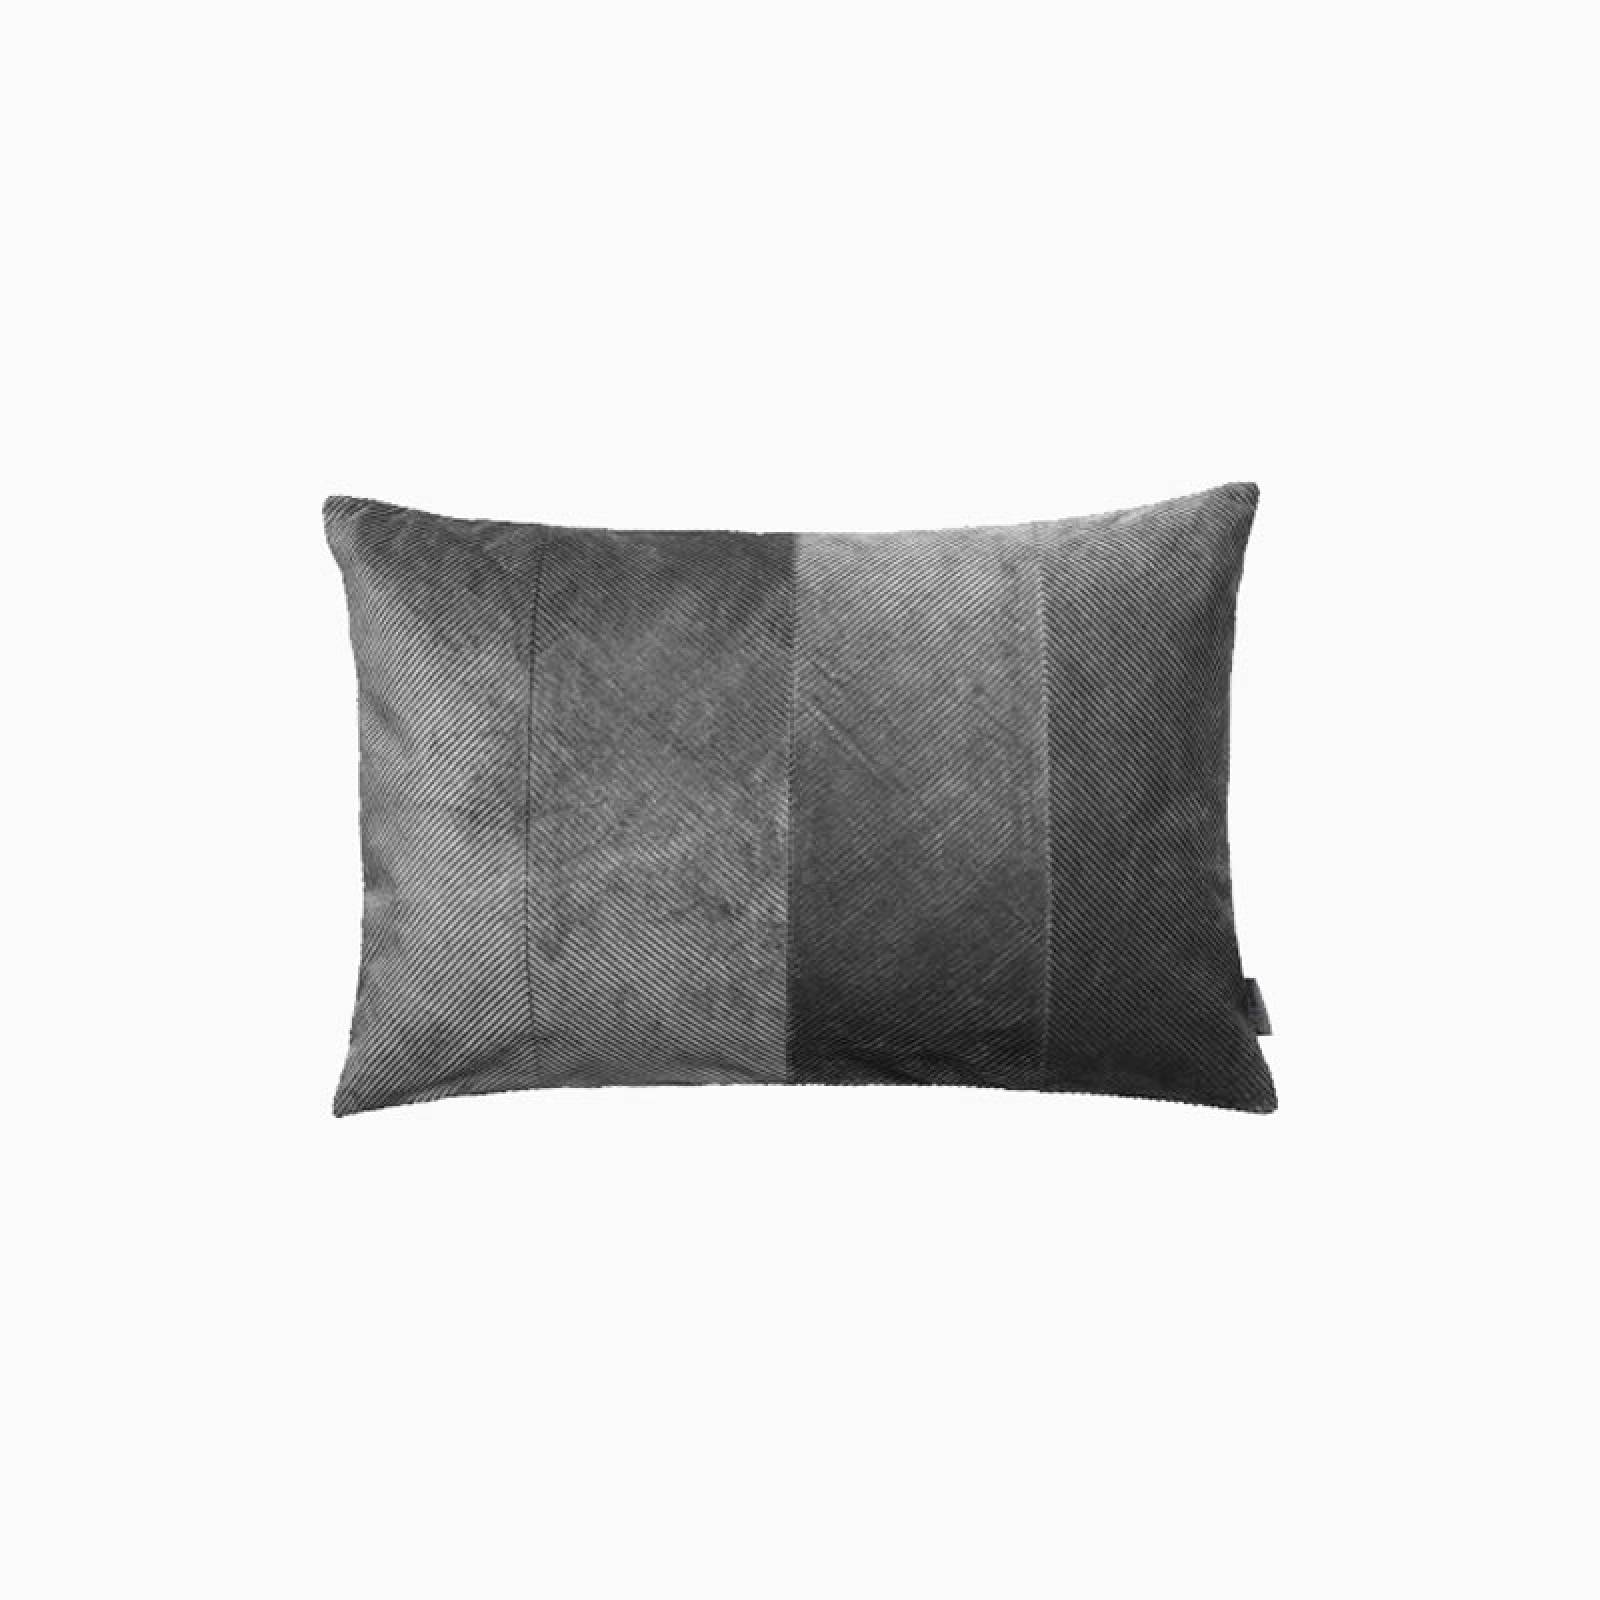 Rectangular Corduroy Cushion In Steel With Gold Zip